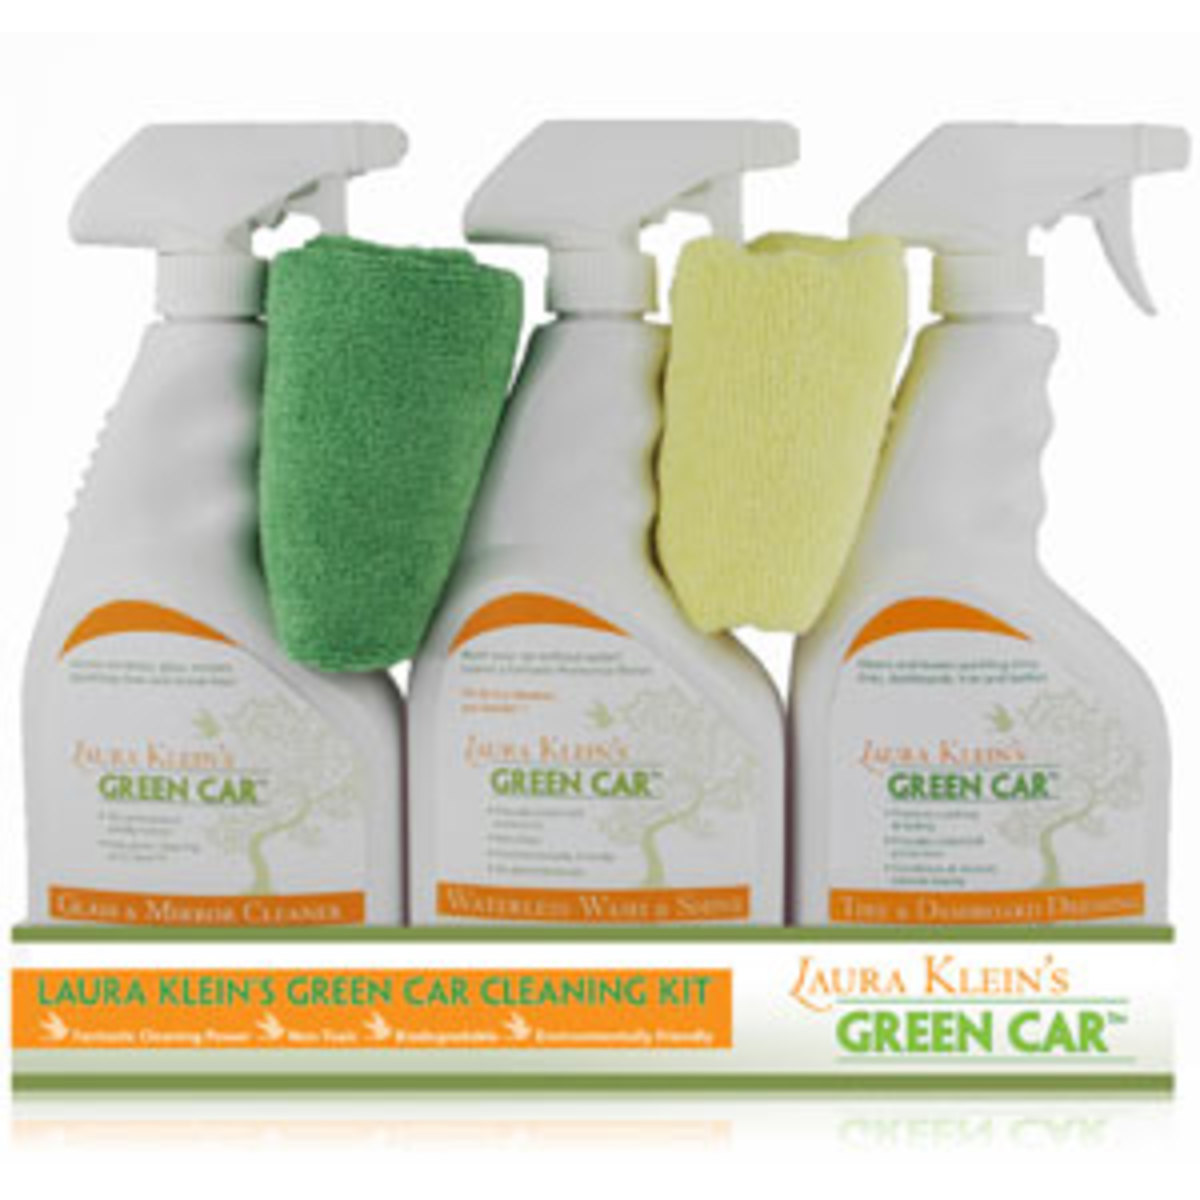 Laura-Kleins-Green-Car-Cleaning-Kit